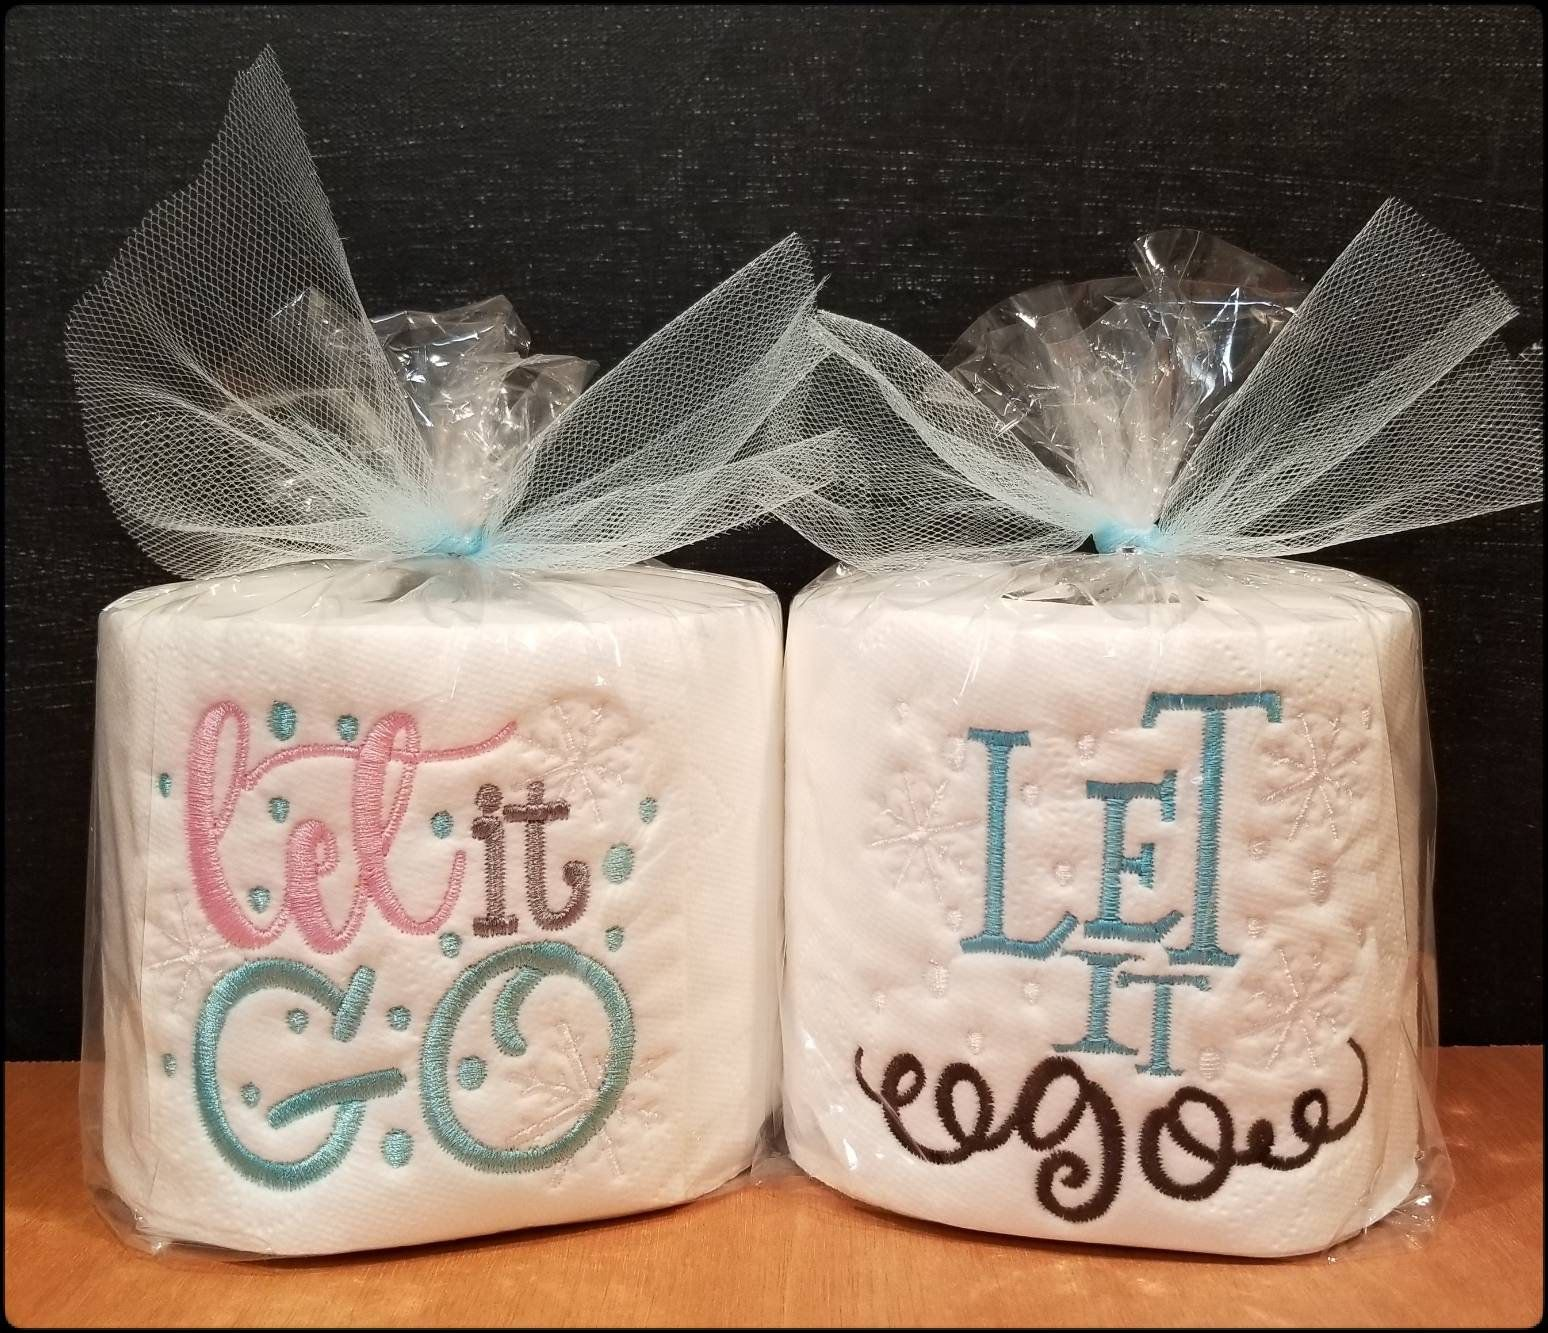 Frozen Inspired Gift Let It Go Kids Christmas Secret Santa Gag Embroidered Toilet Paper Gifts For Everyone By Southernthrills